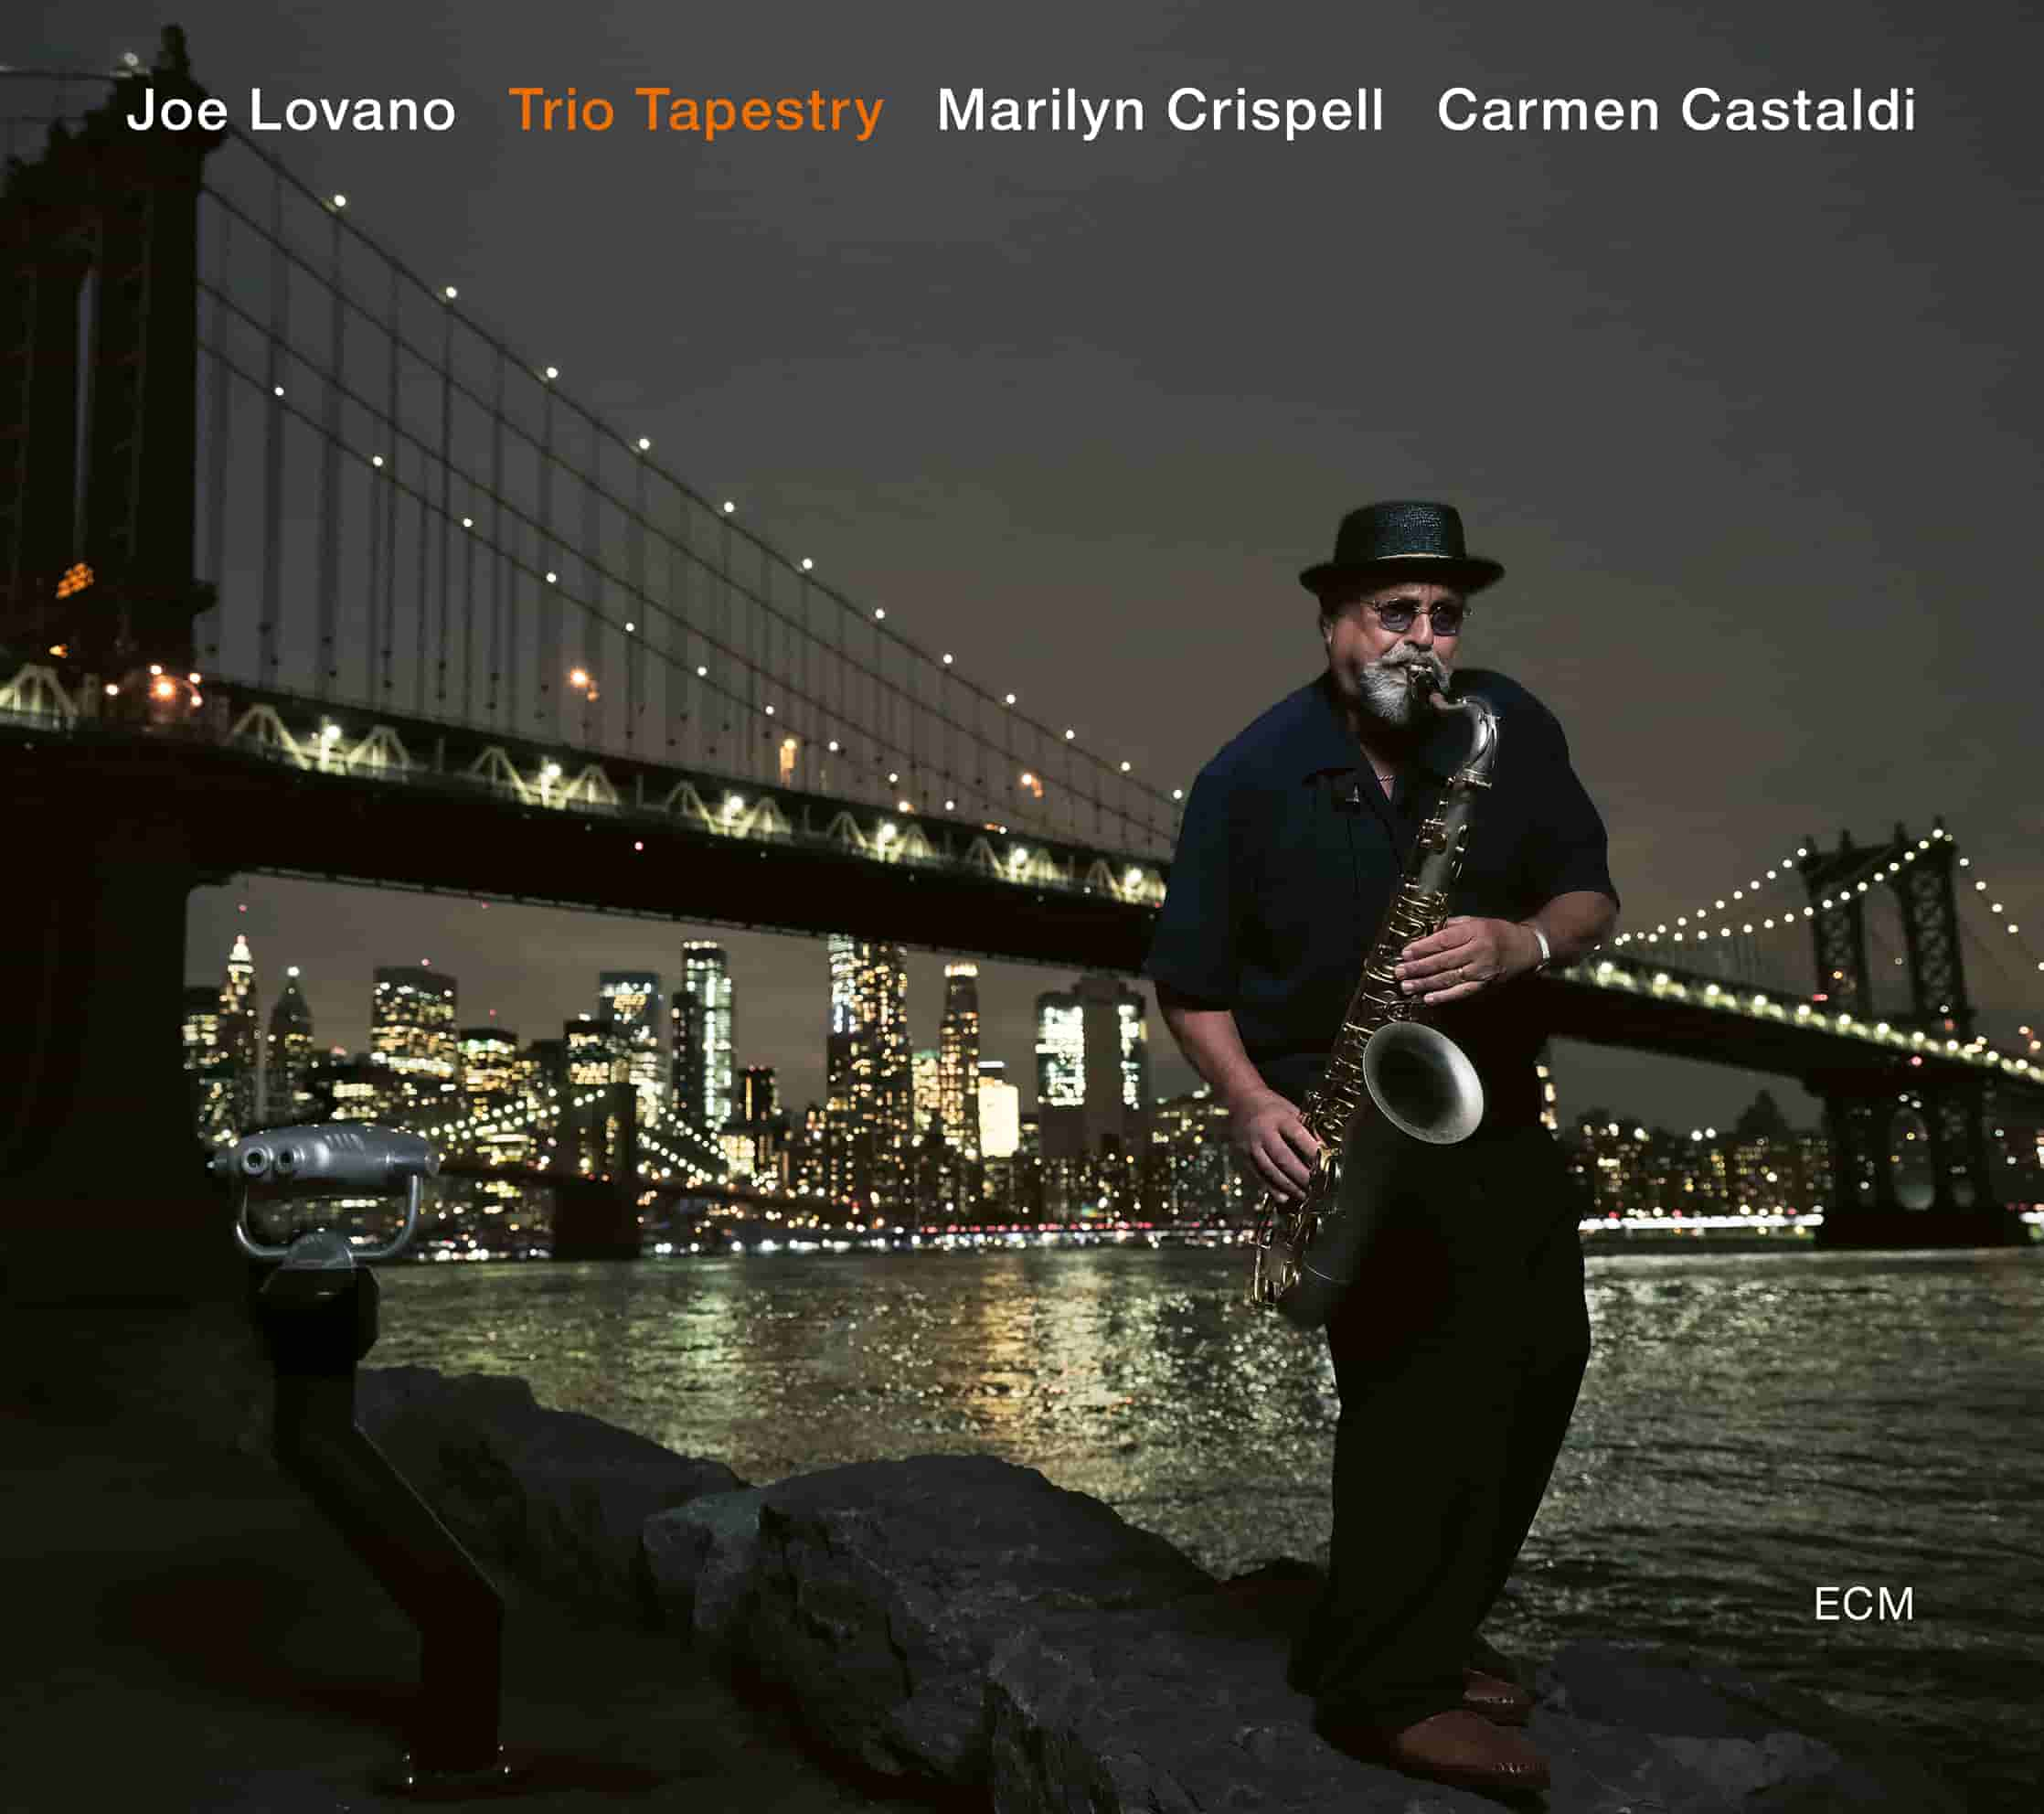 Qwest-TV-Joe-Lovano-Trio-Tapestry-min